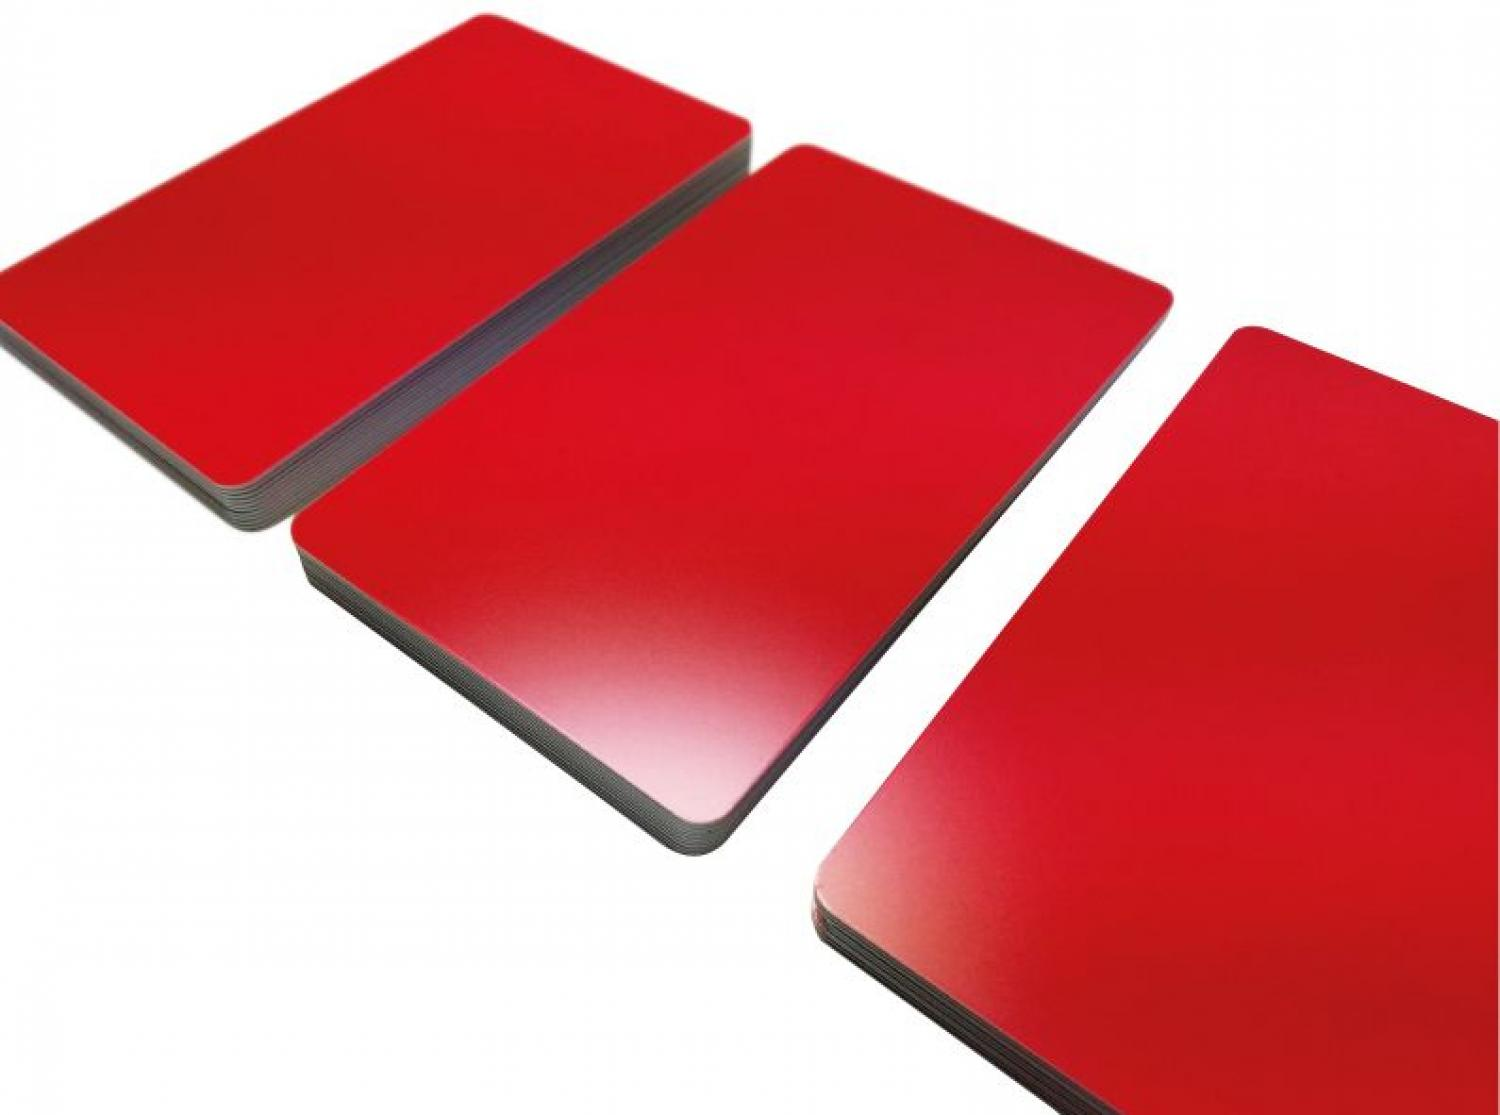 plastic card red matt finish